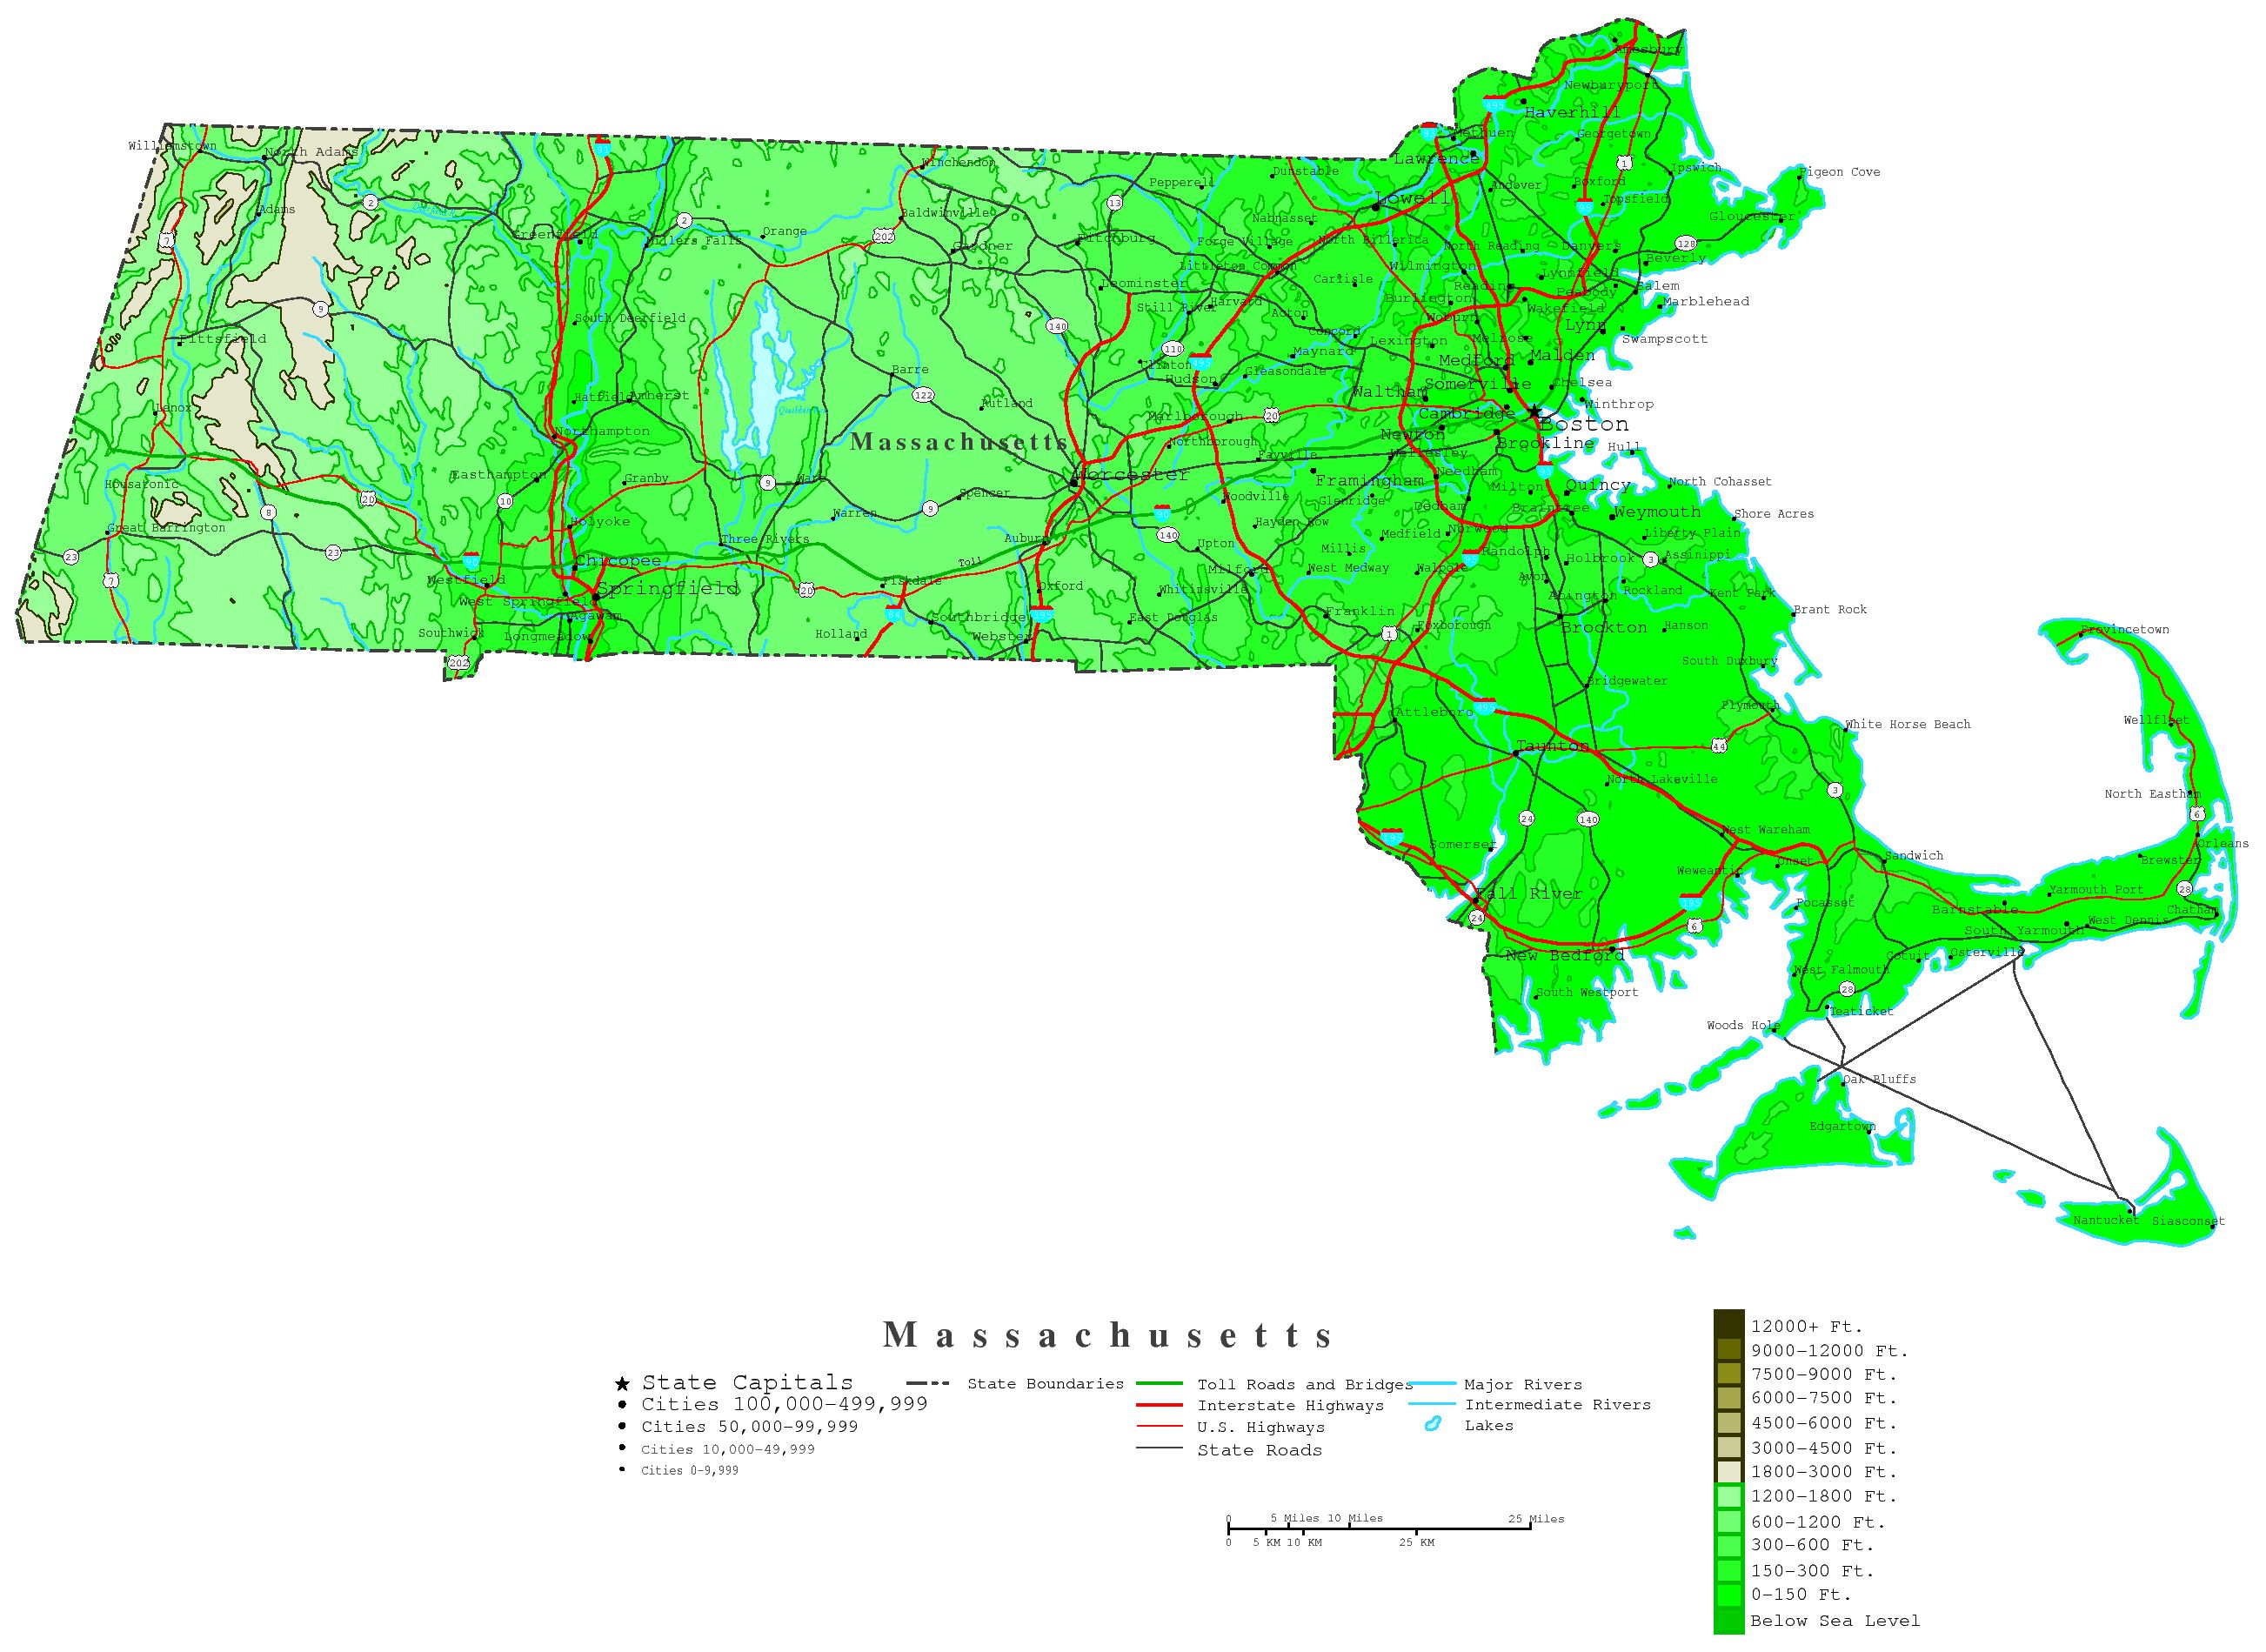 Massachusetts Contour Map - Massachusetts physical map